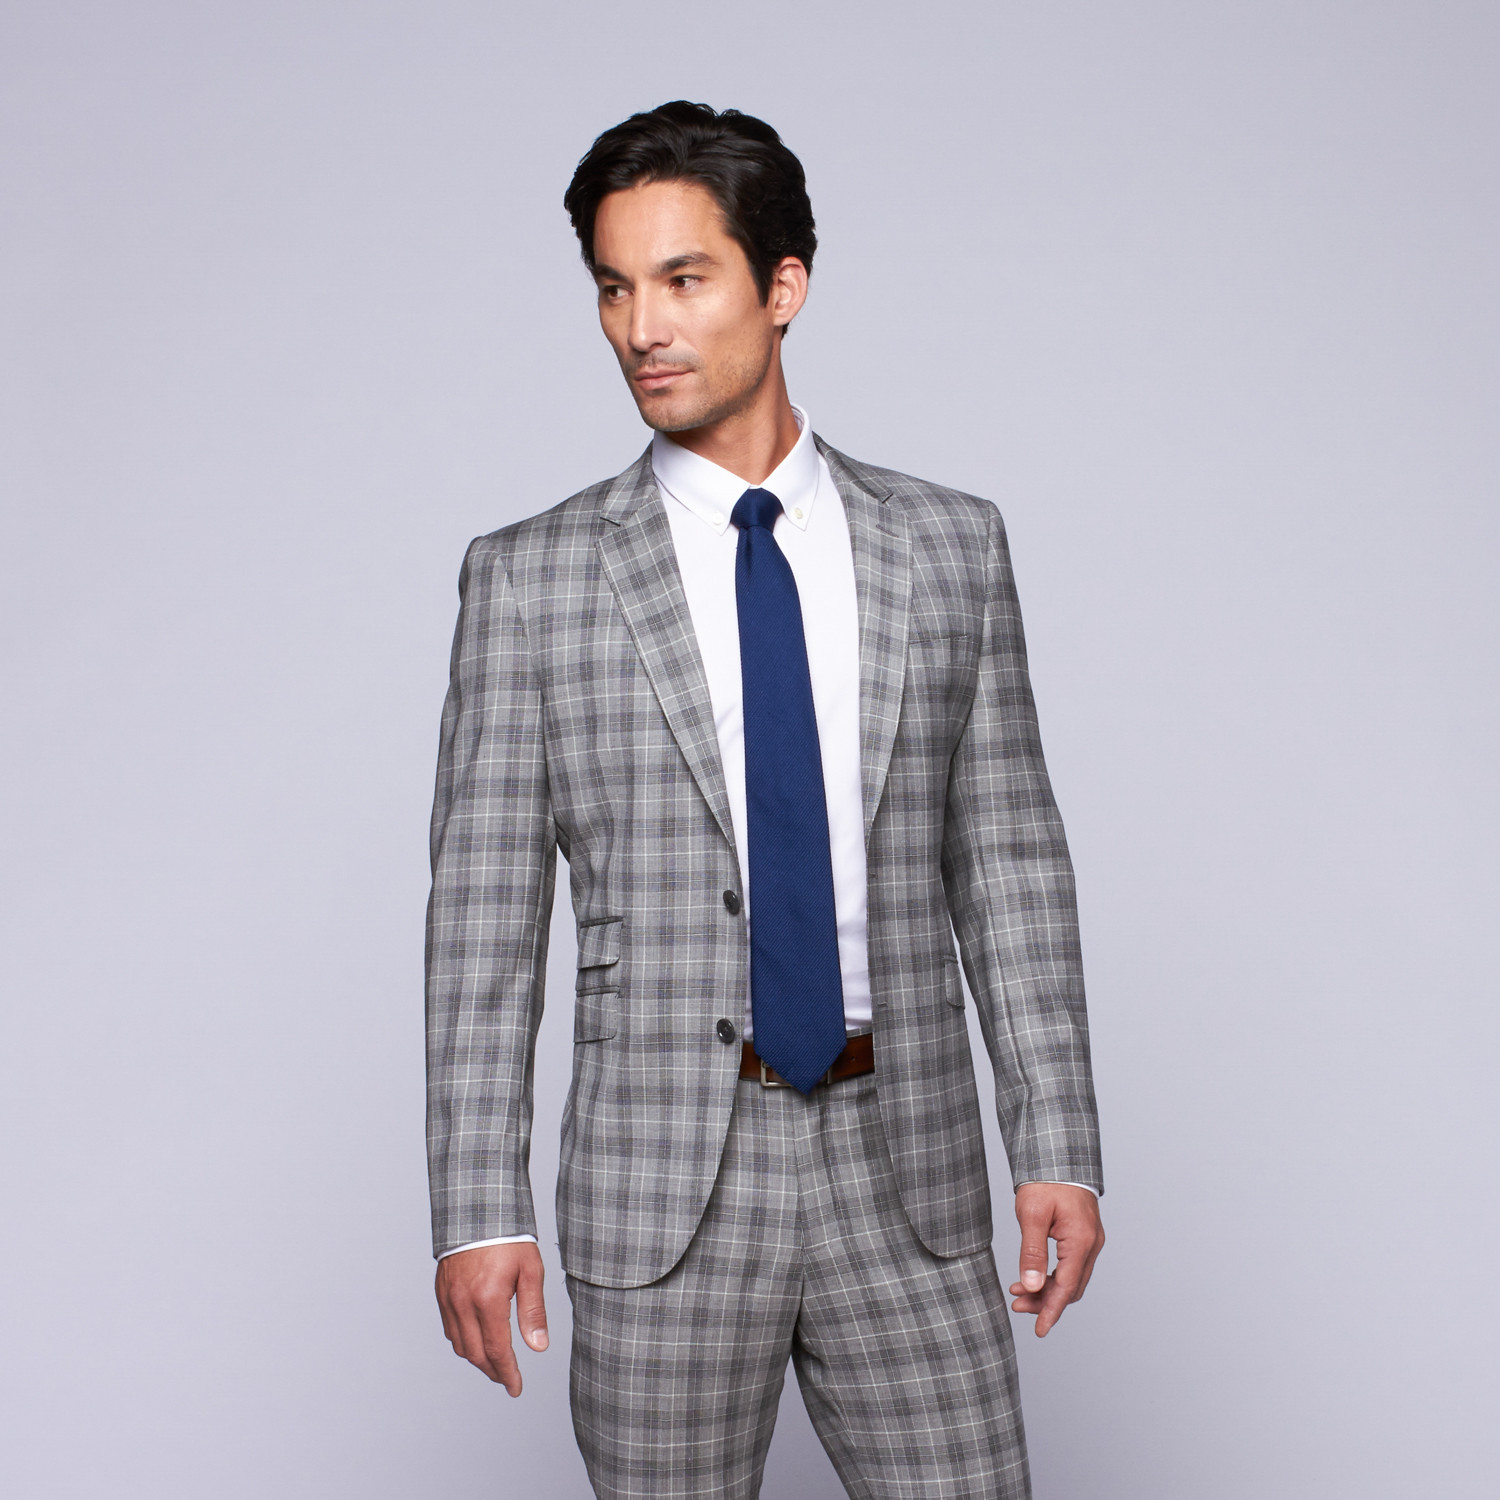 Trend Maxman - Slim Suiting For Everyday - Touch of Modern